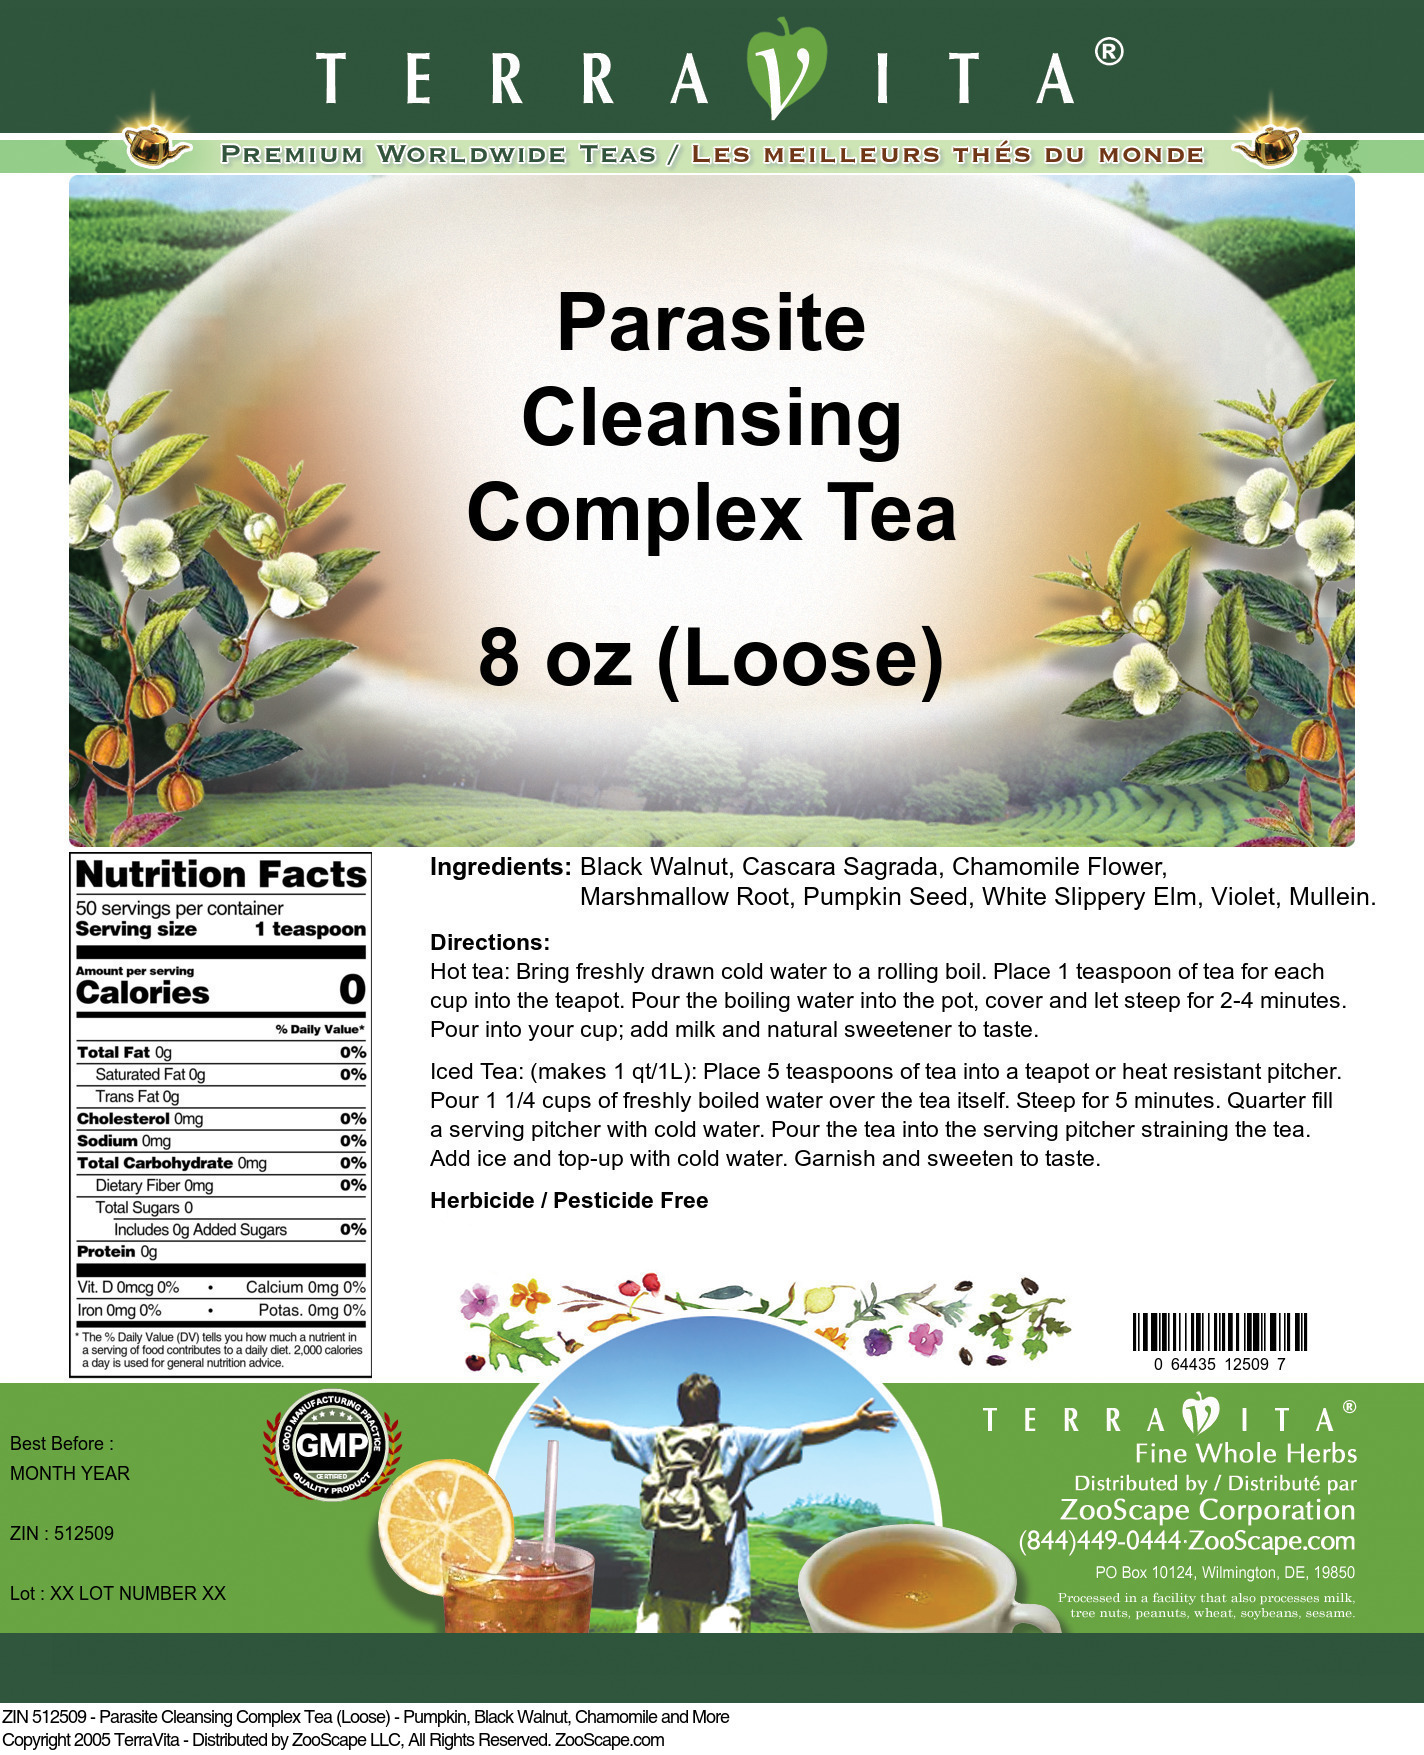 Parasite Cleansing Complex Tea (Loose) - Pumpkin, Black Walnut, Chamomile and More